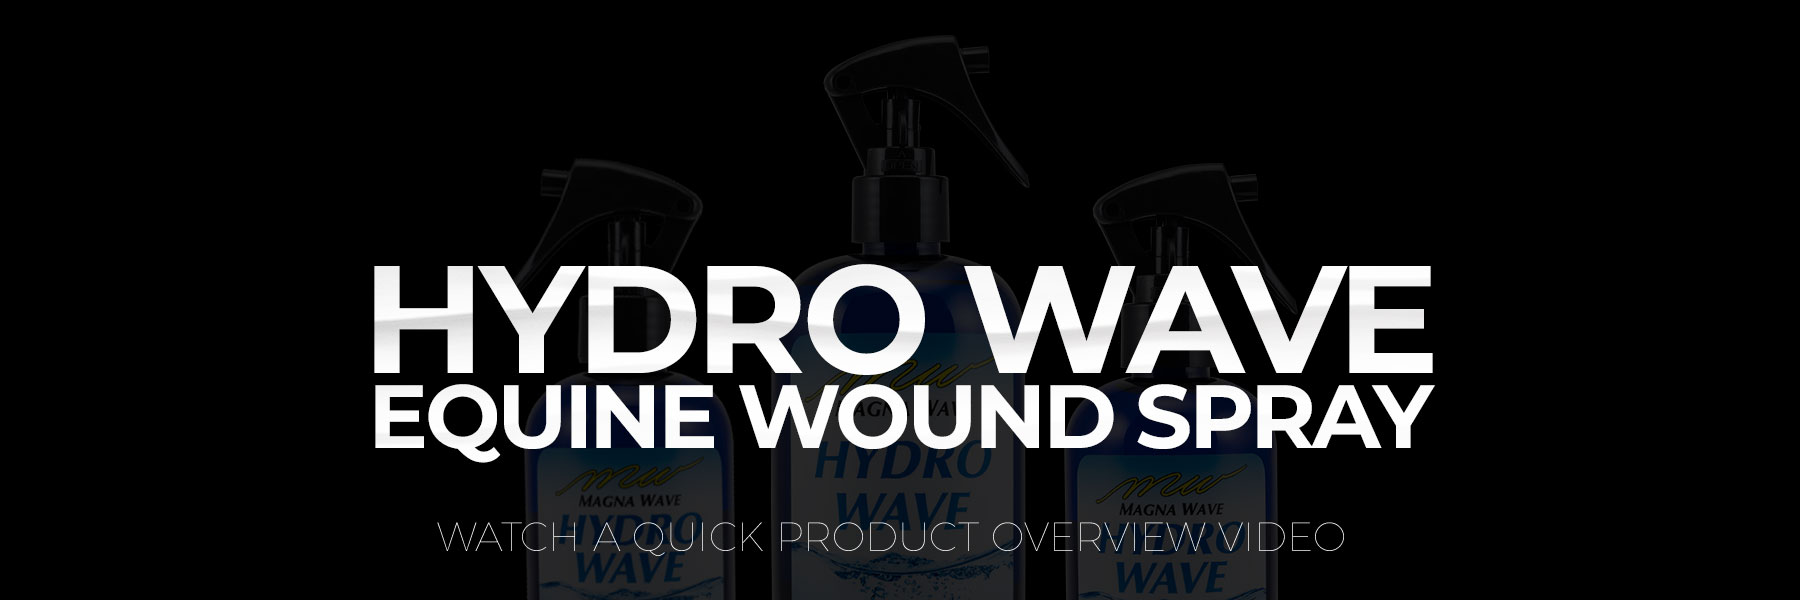 Hydro Wave Equine Wound Spray